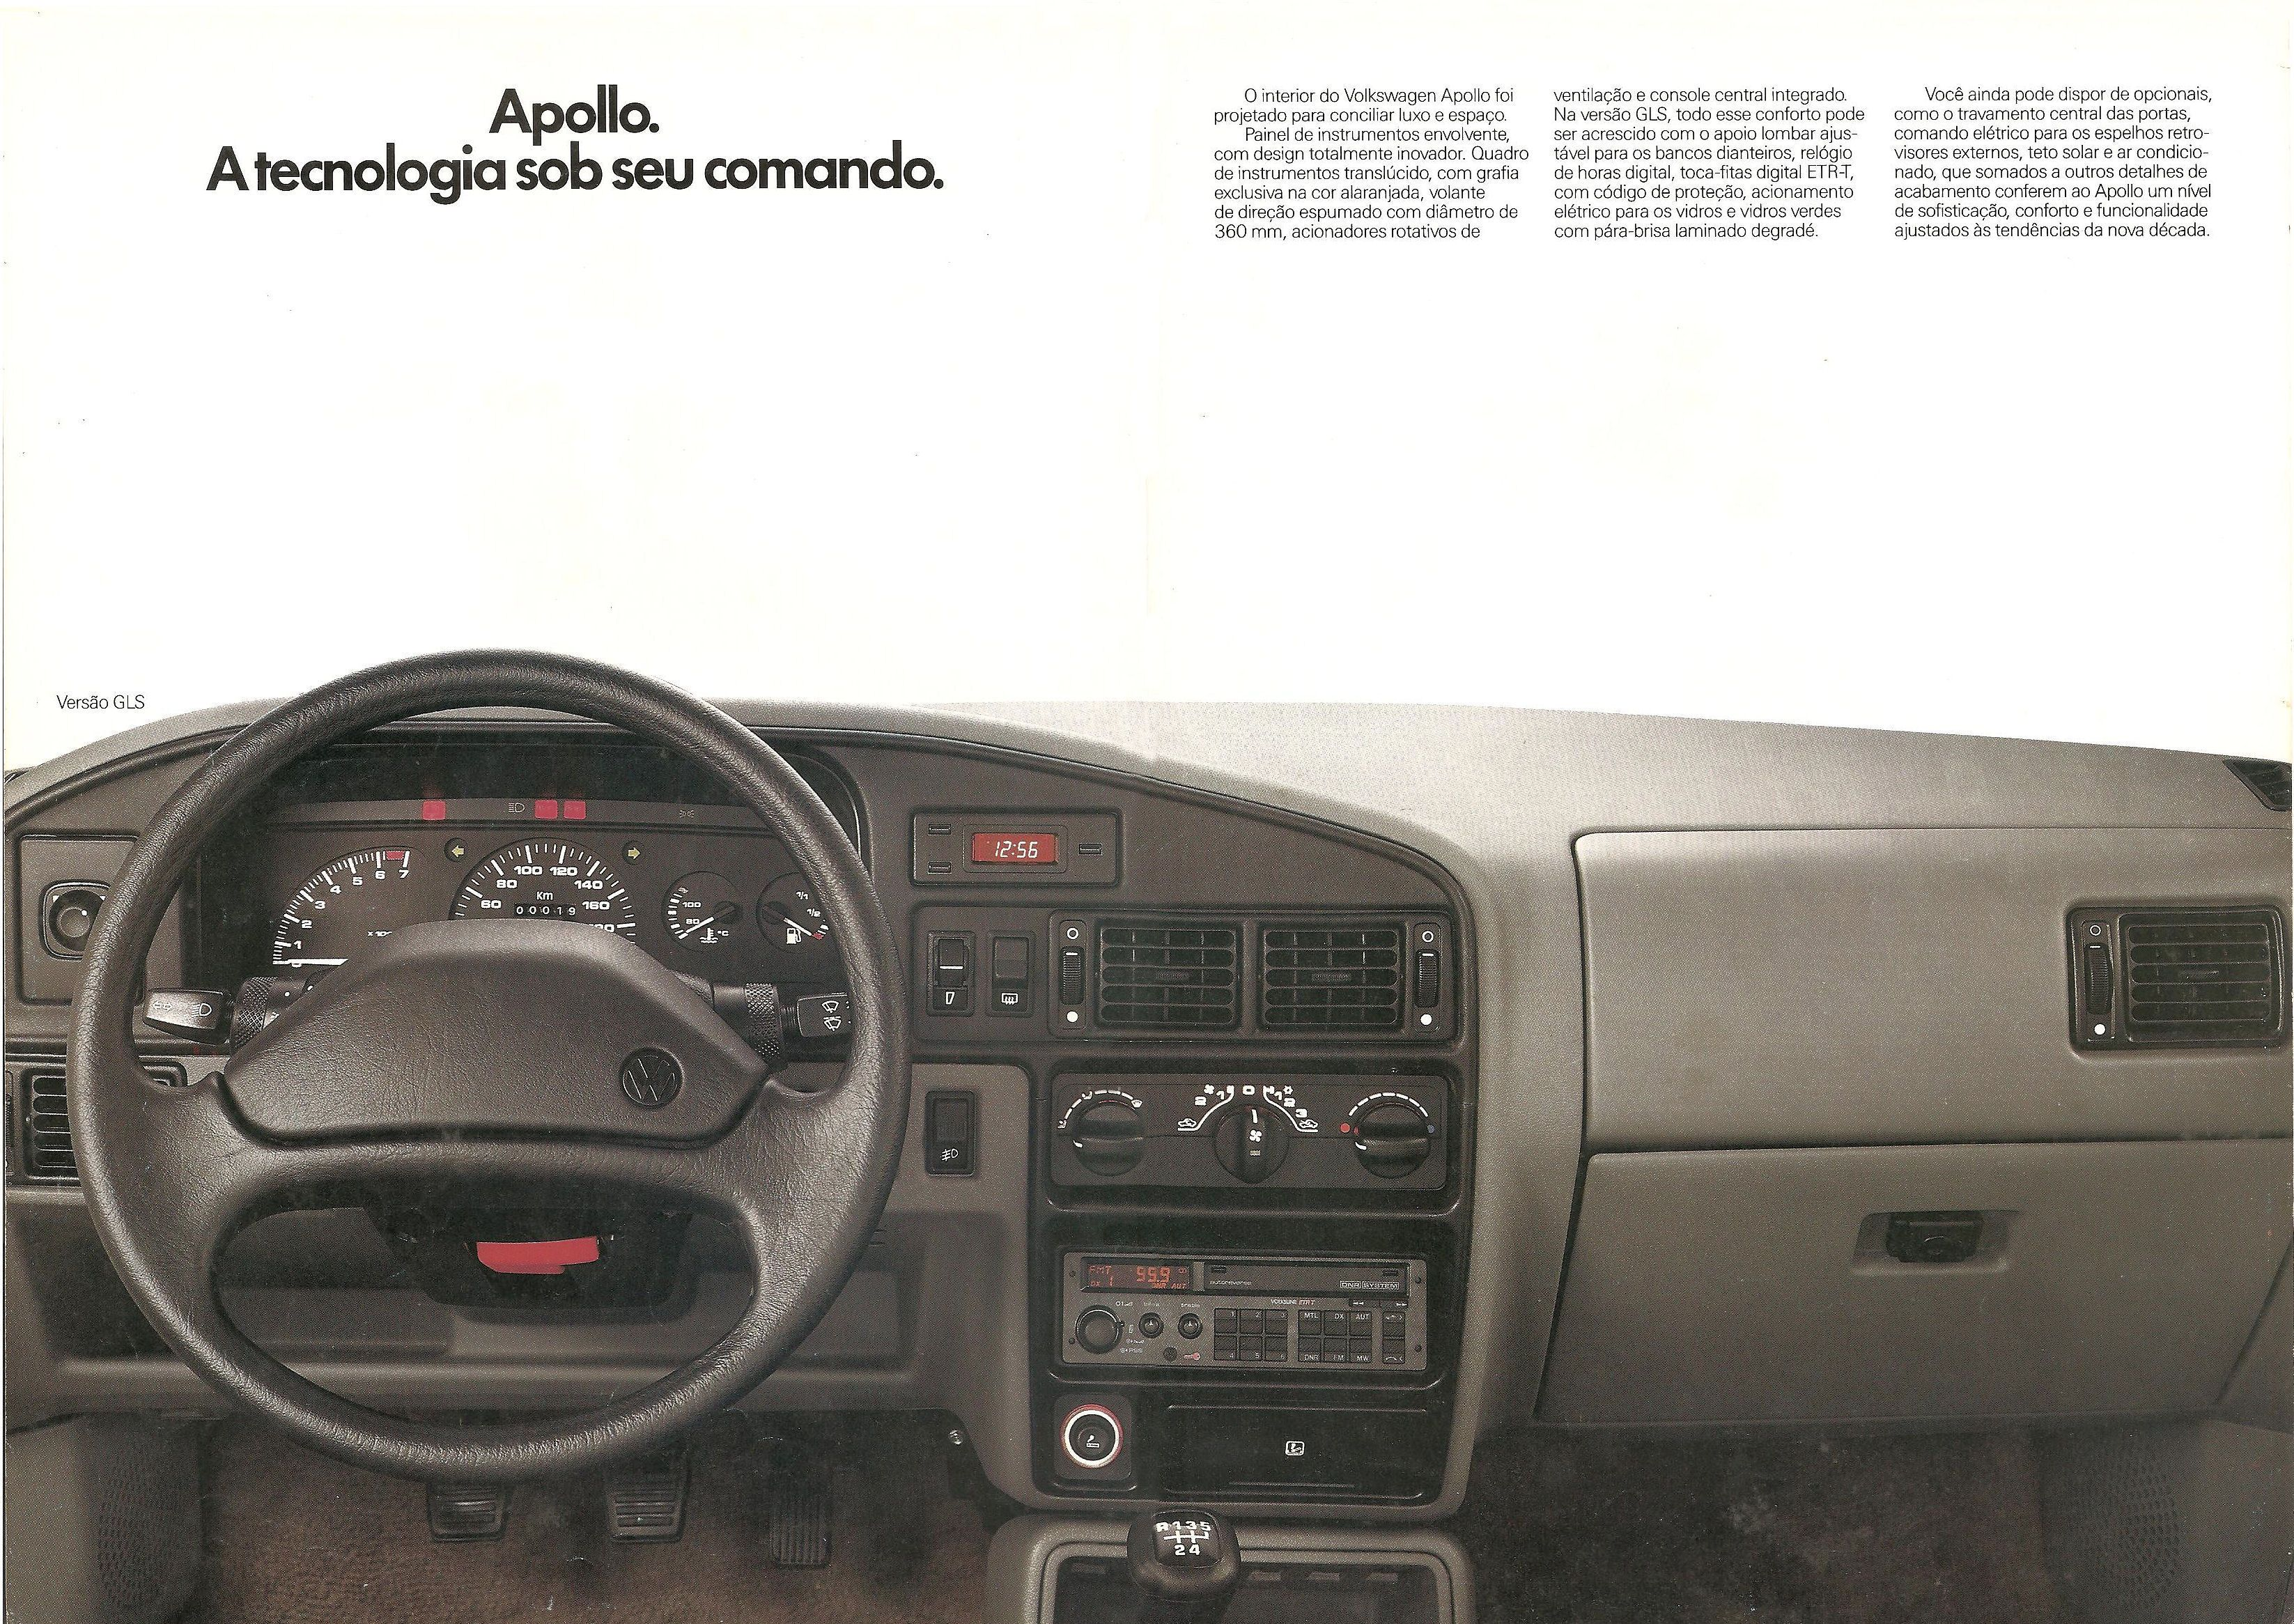 1990 Volkswagen Apollo brochure